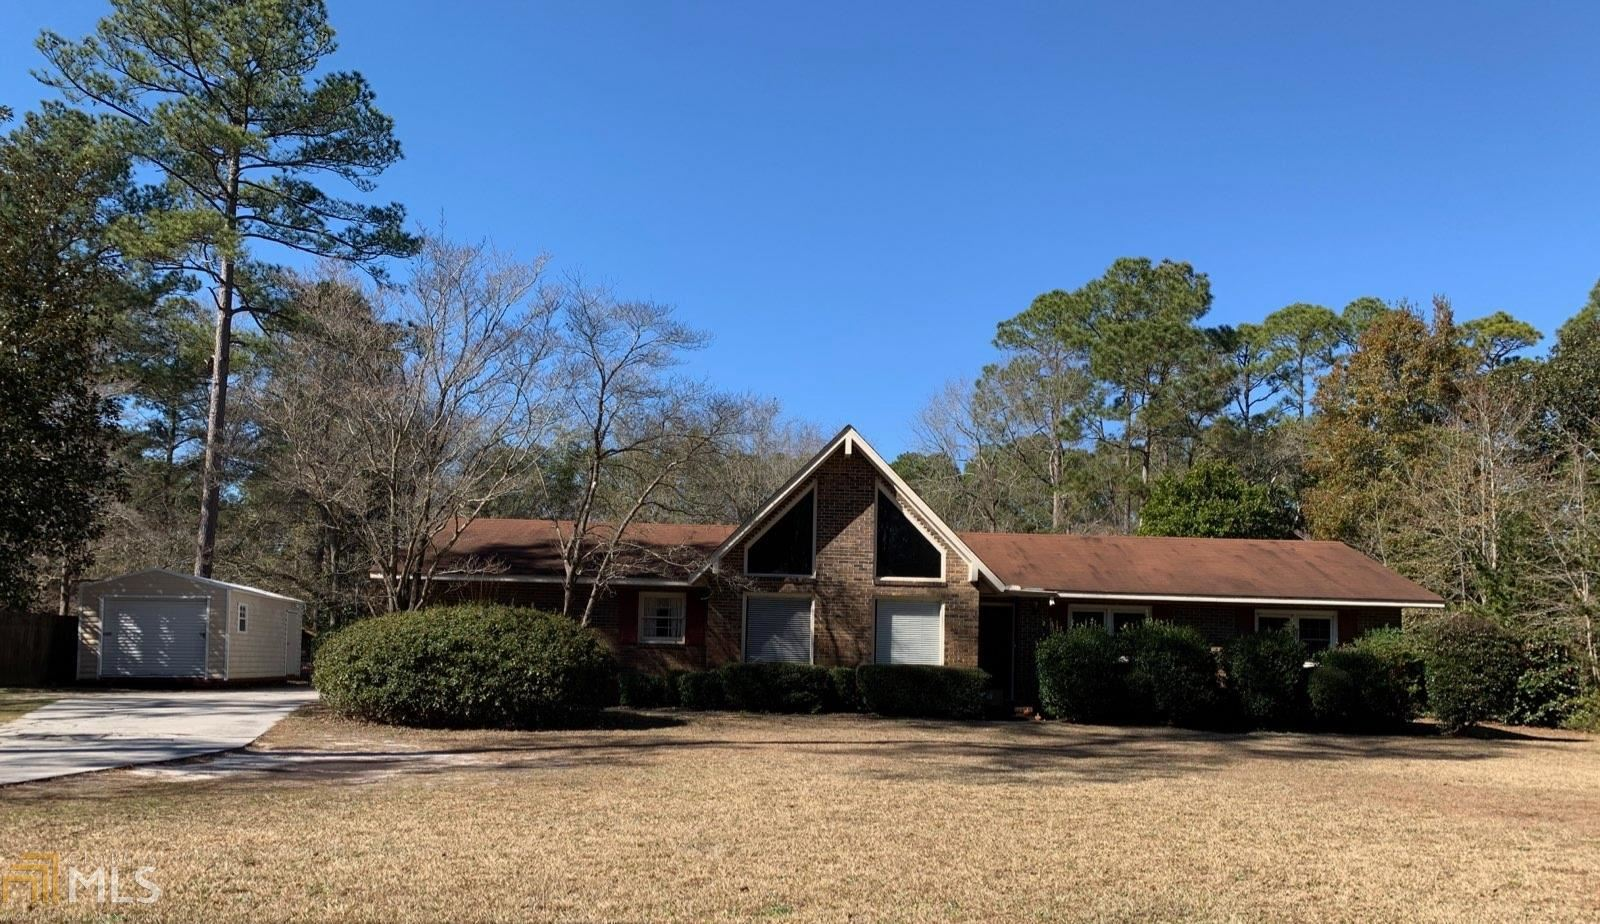 59 Golf Club Cr, Statesboro, GA 30458 - #: 8921503